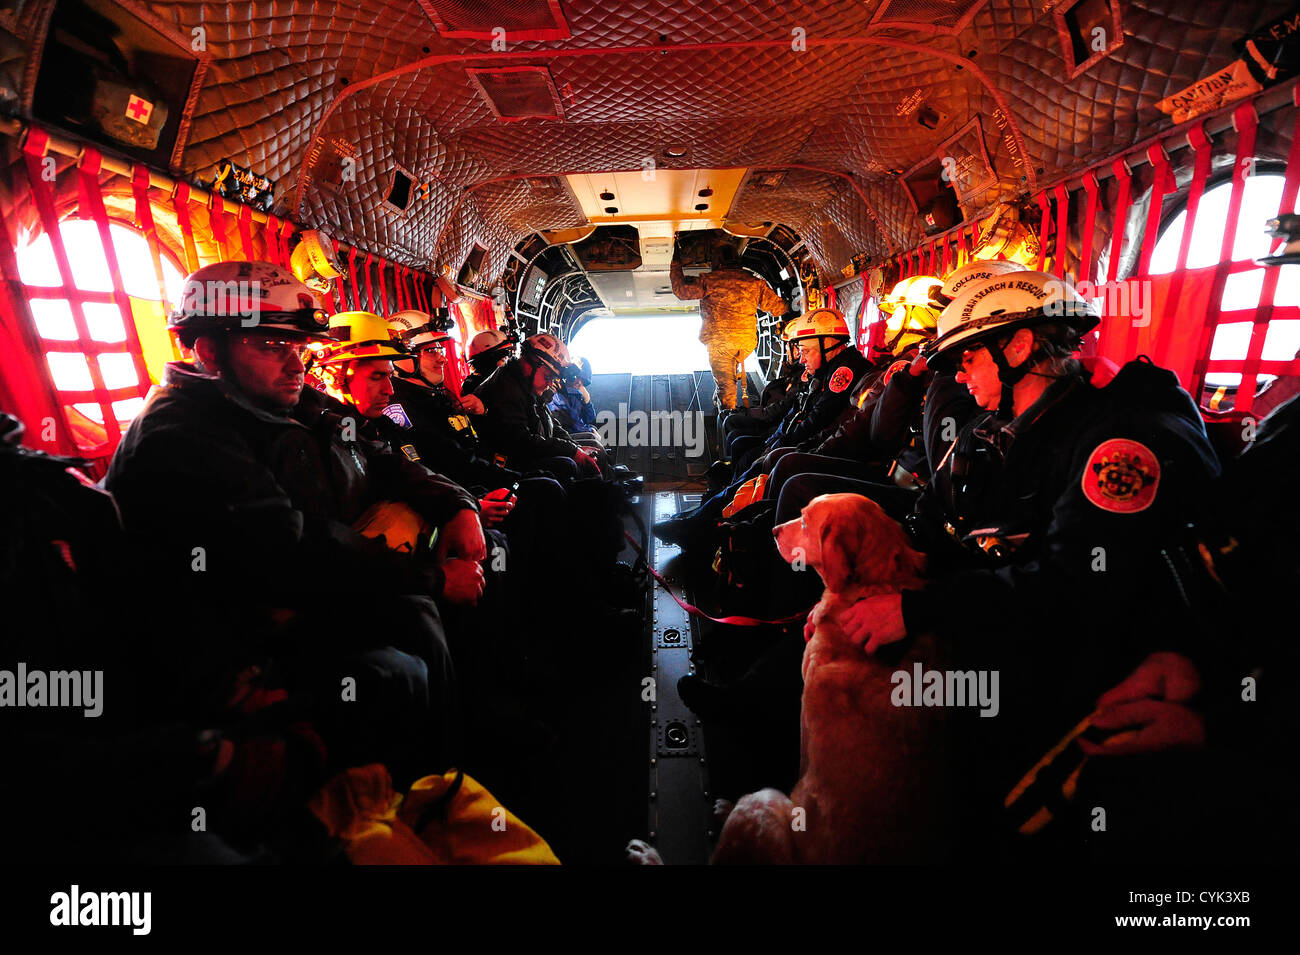 JOINT BASE MCGUIRE-DIX-LAKEHURST, N.J. – Members of Maryland Urban Search and Rescue Task Force one fly aboard a Stock Photo